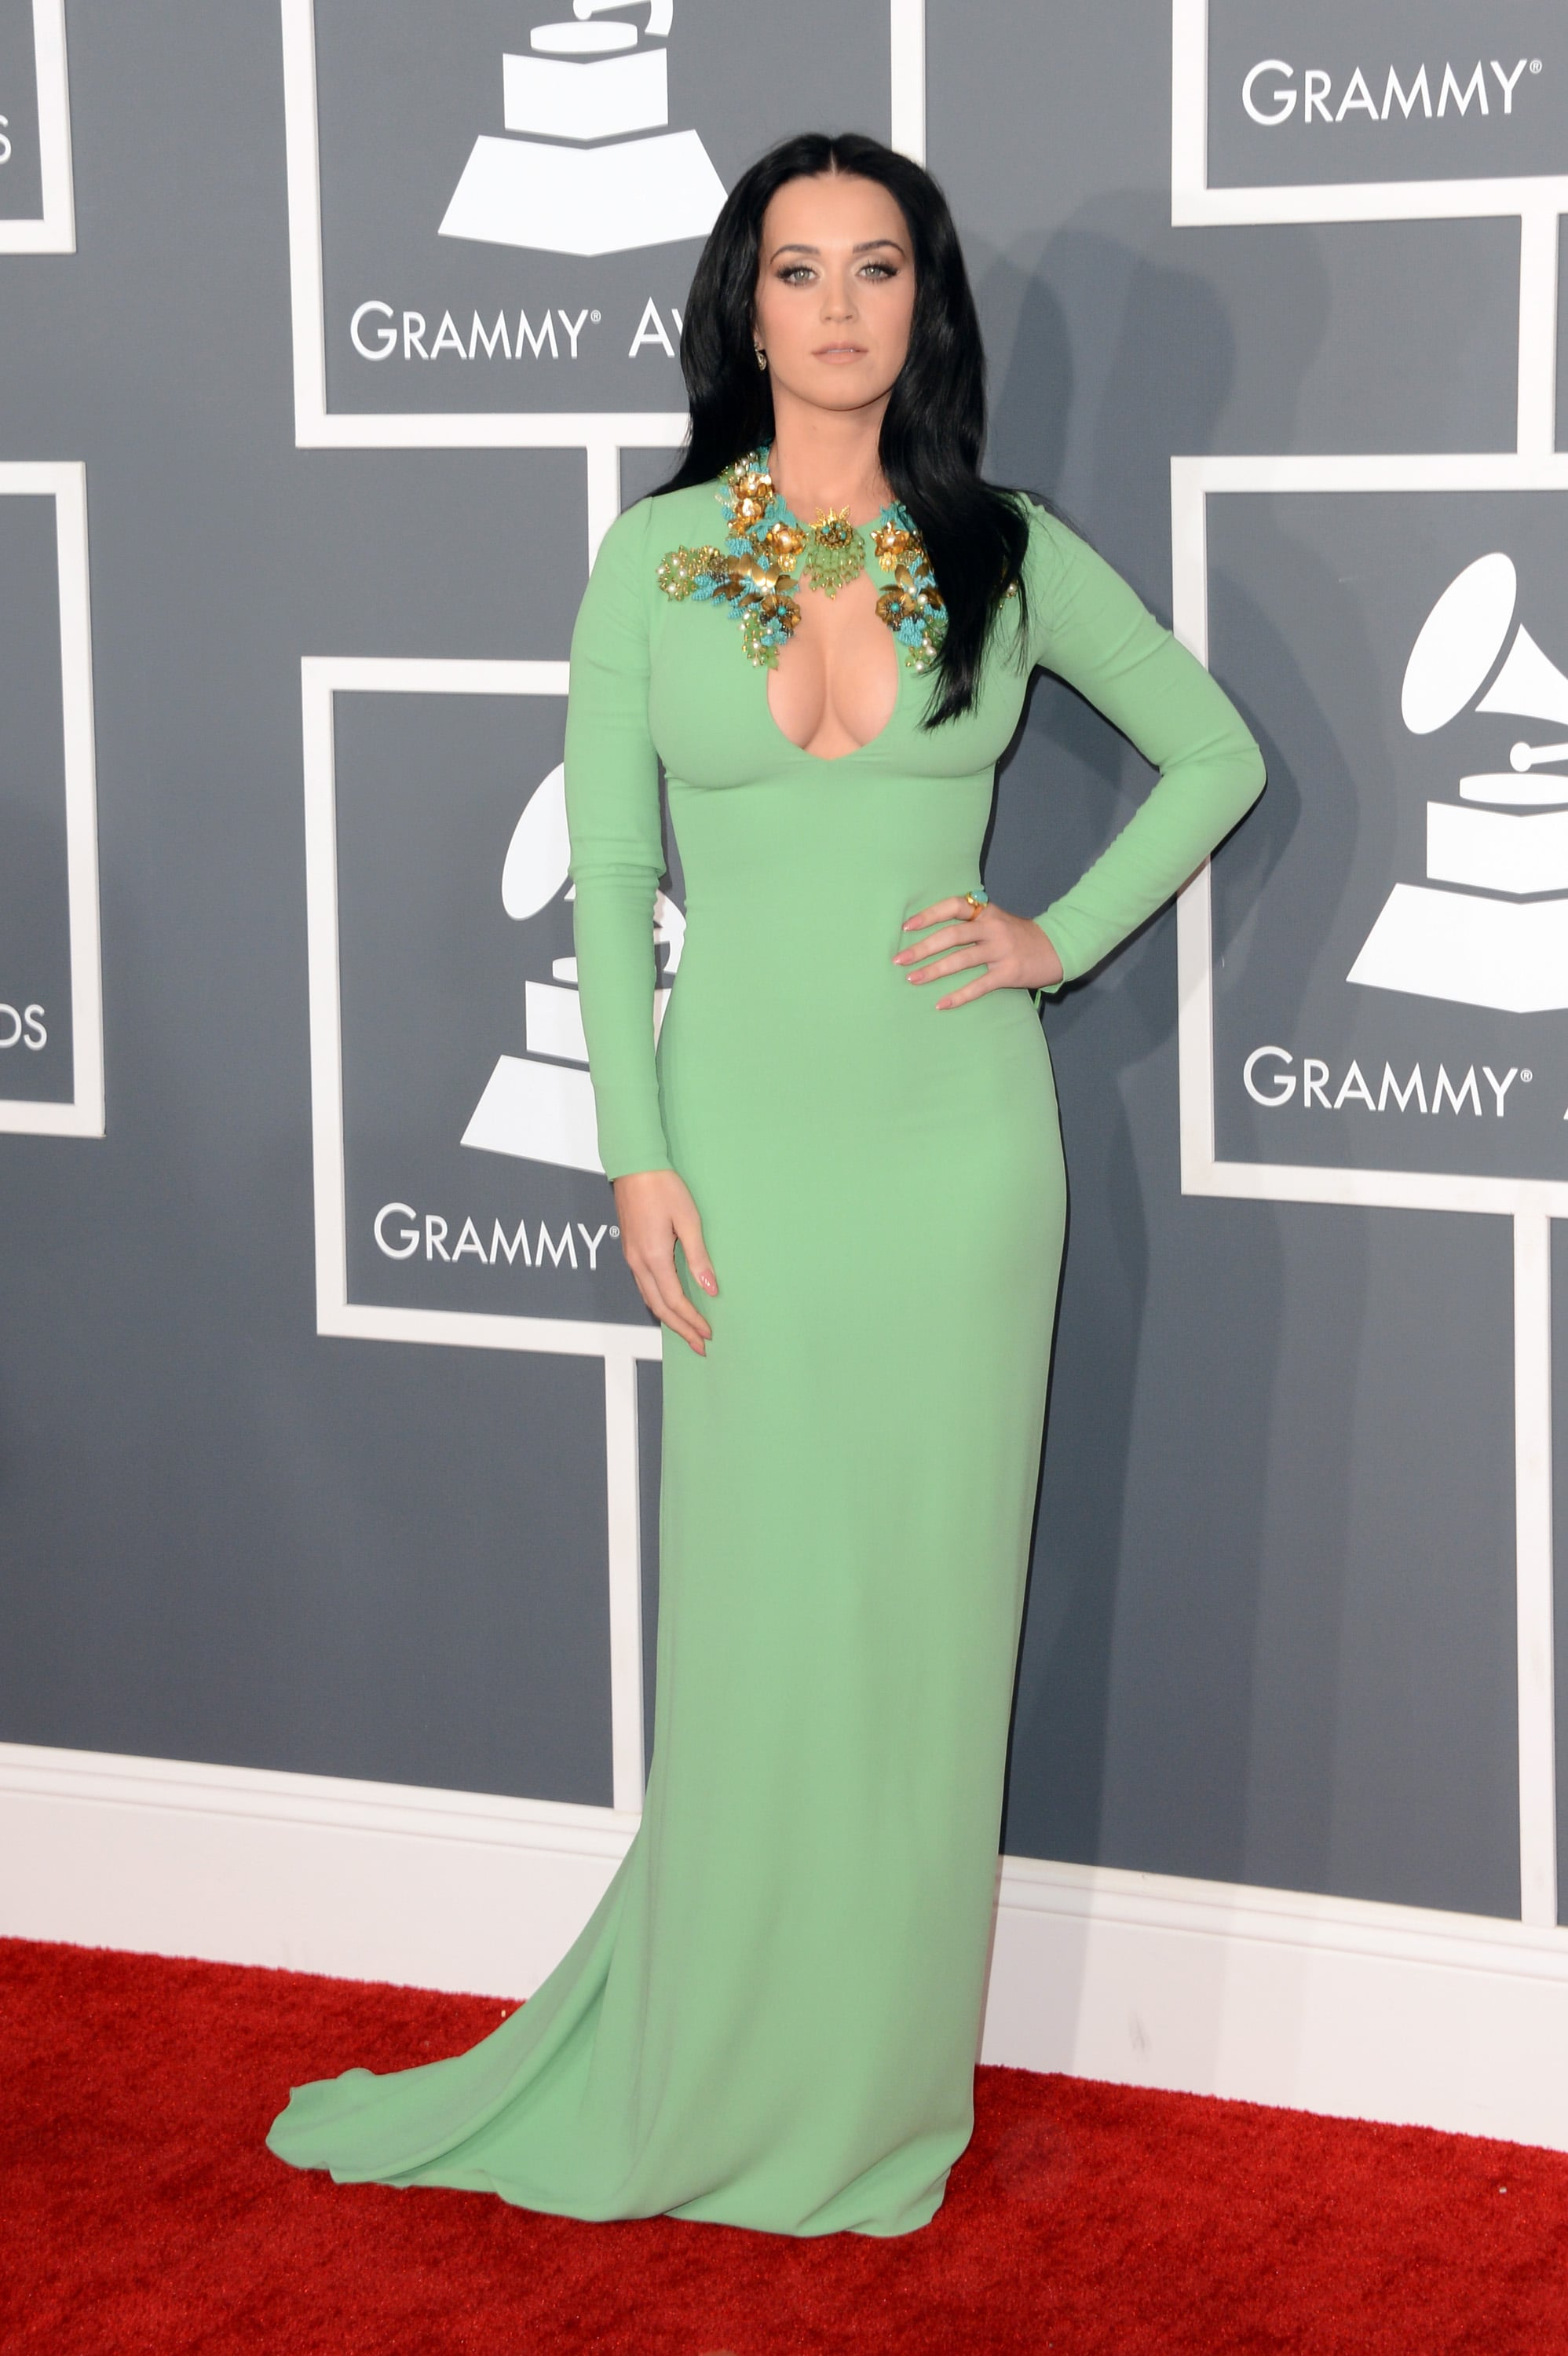 Katy Perry wore a green gown for the Grammys.